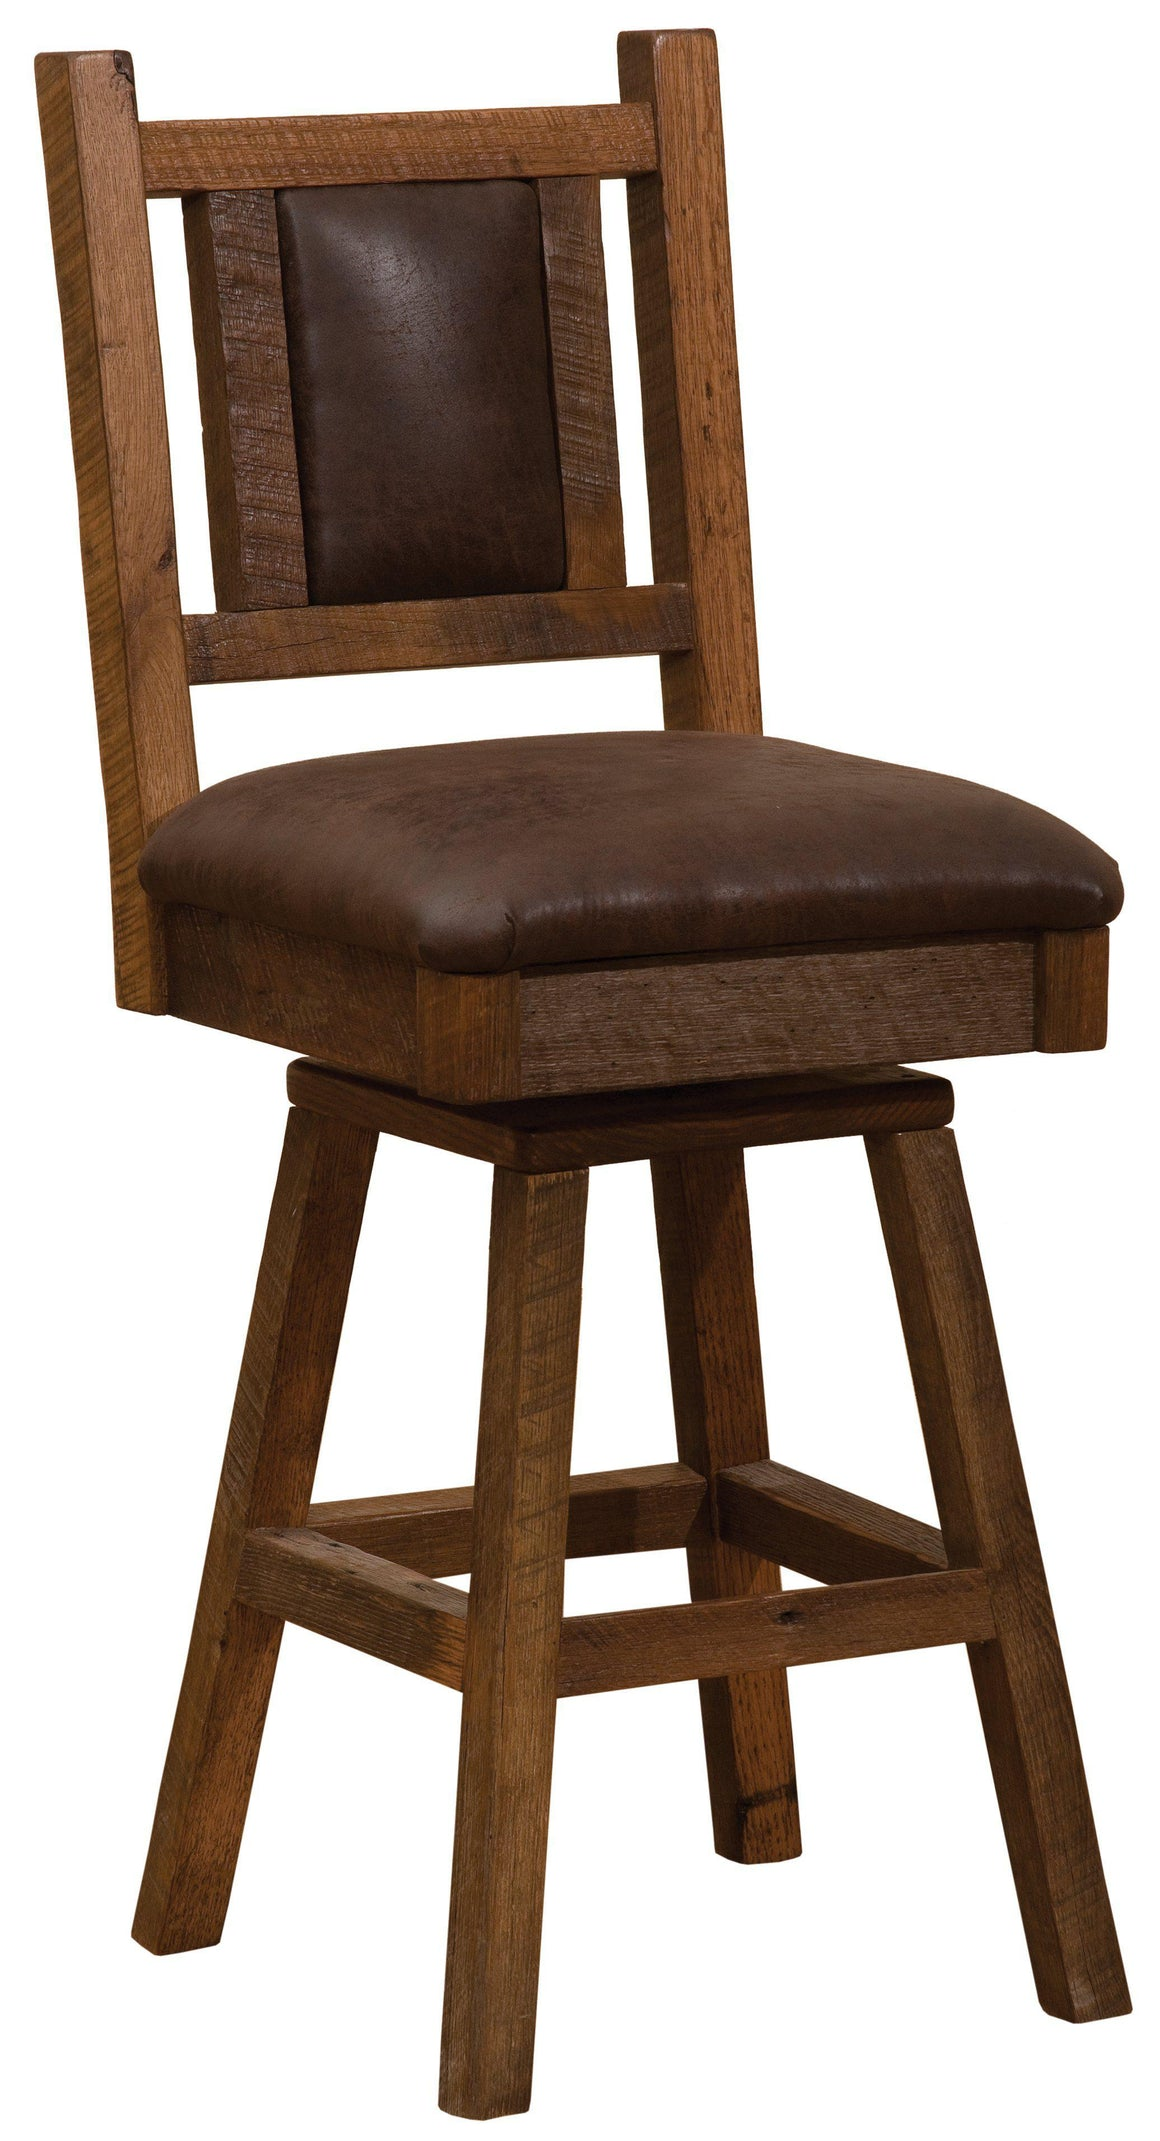 "Barnwood Swivel Upholstered Bar Stool with Back -  30"" Seat Height - Rustic Deco Incorporated"